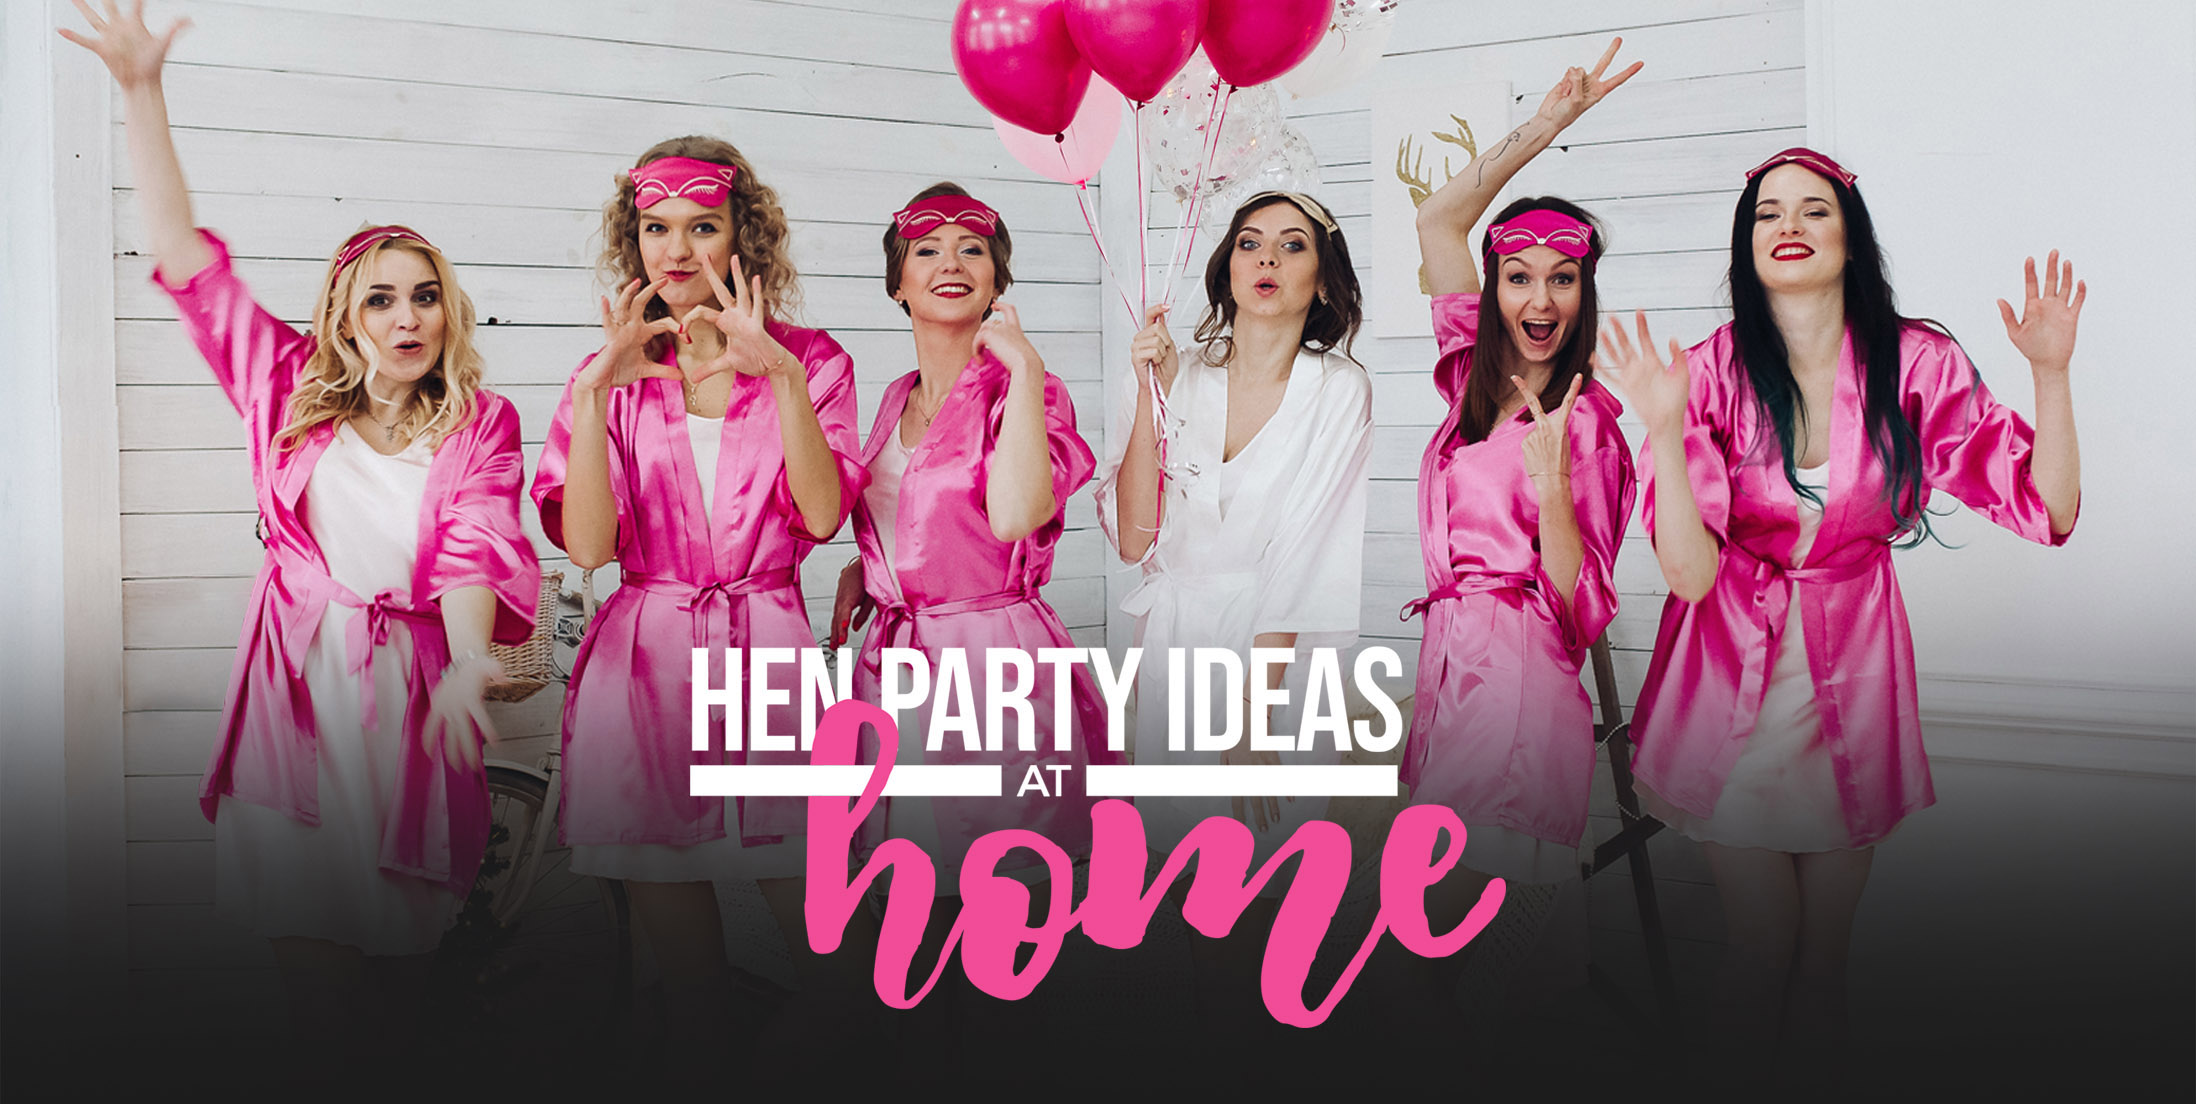 Wonderful Hen Party Ideas at Home